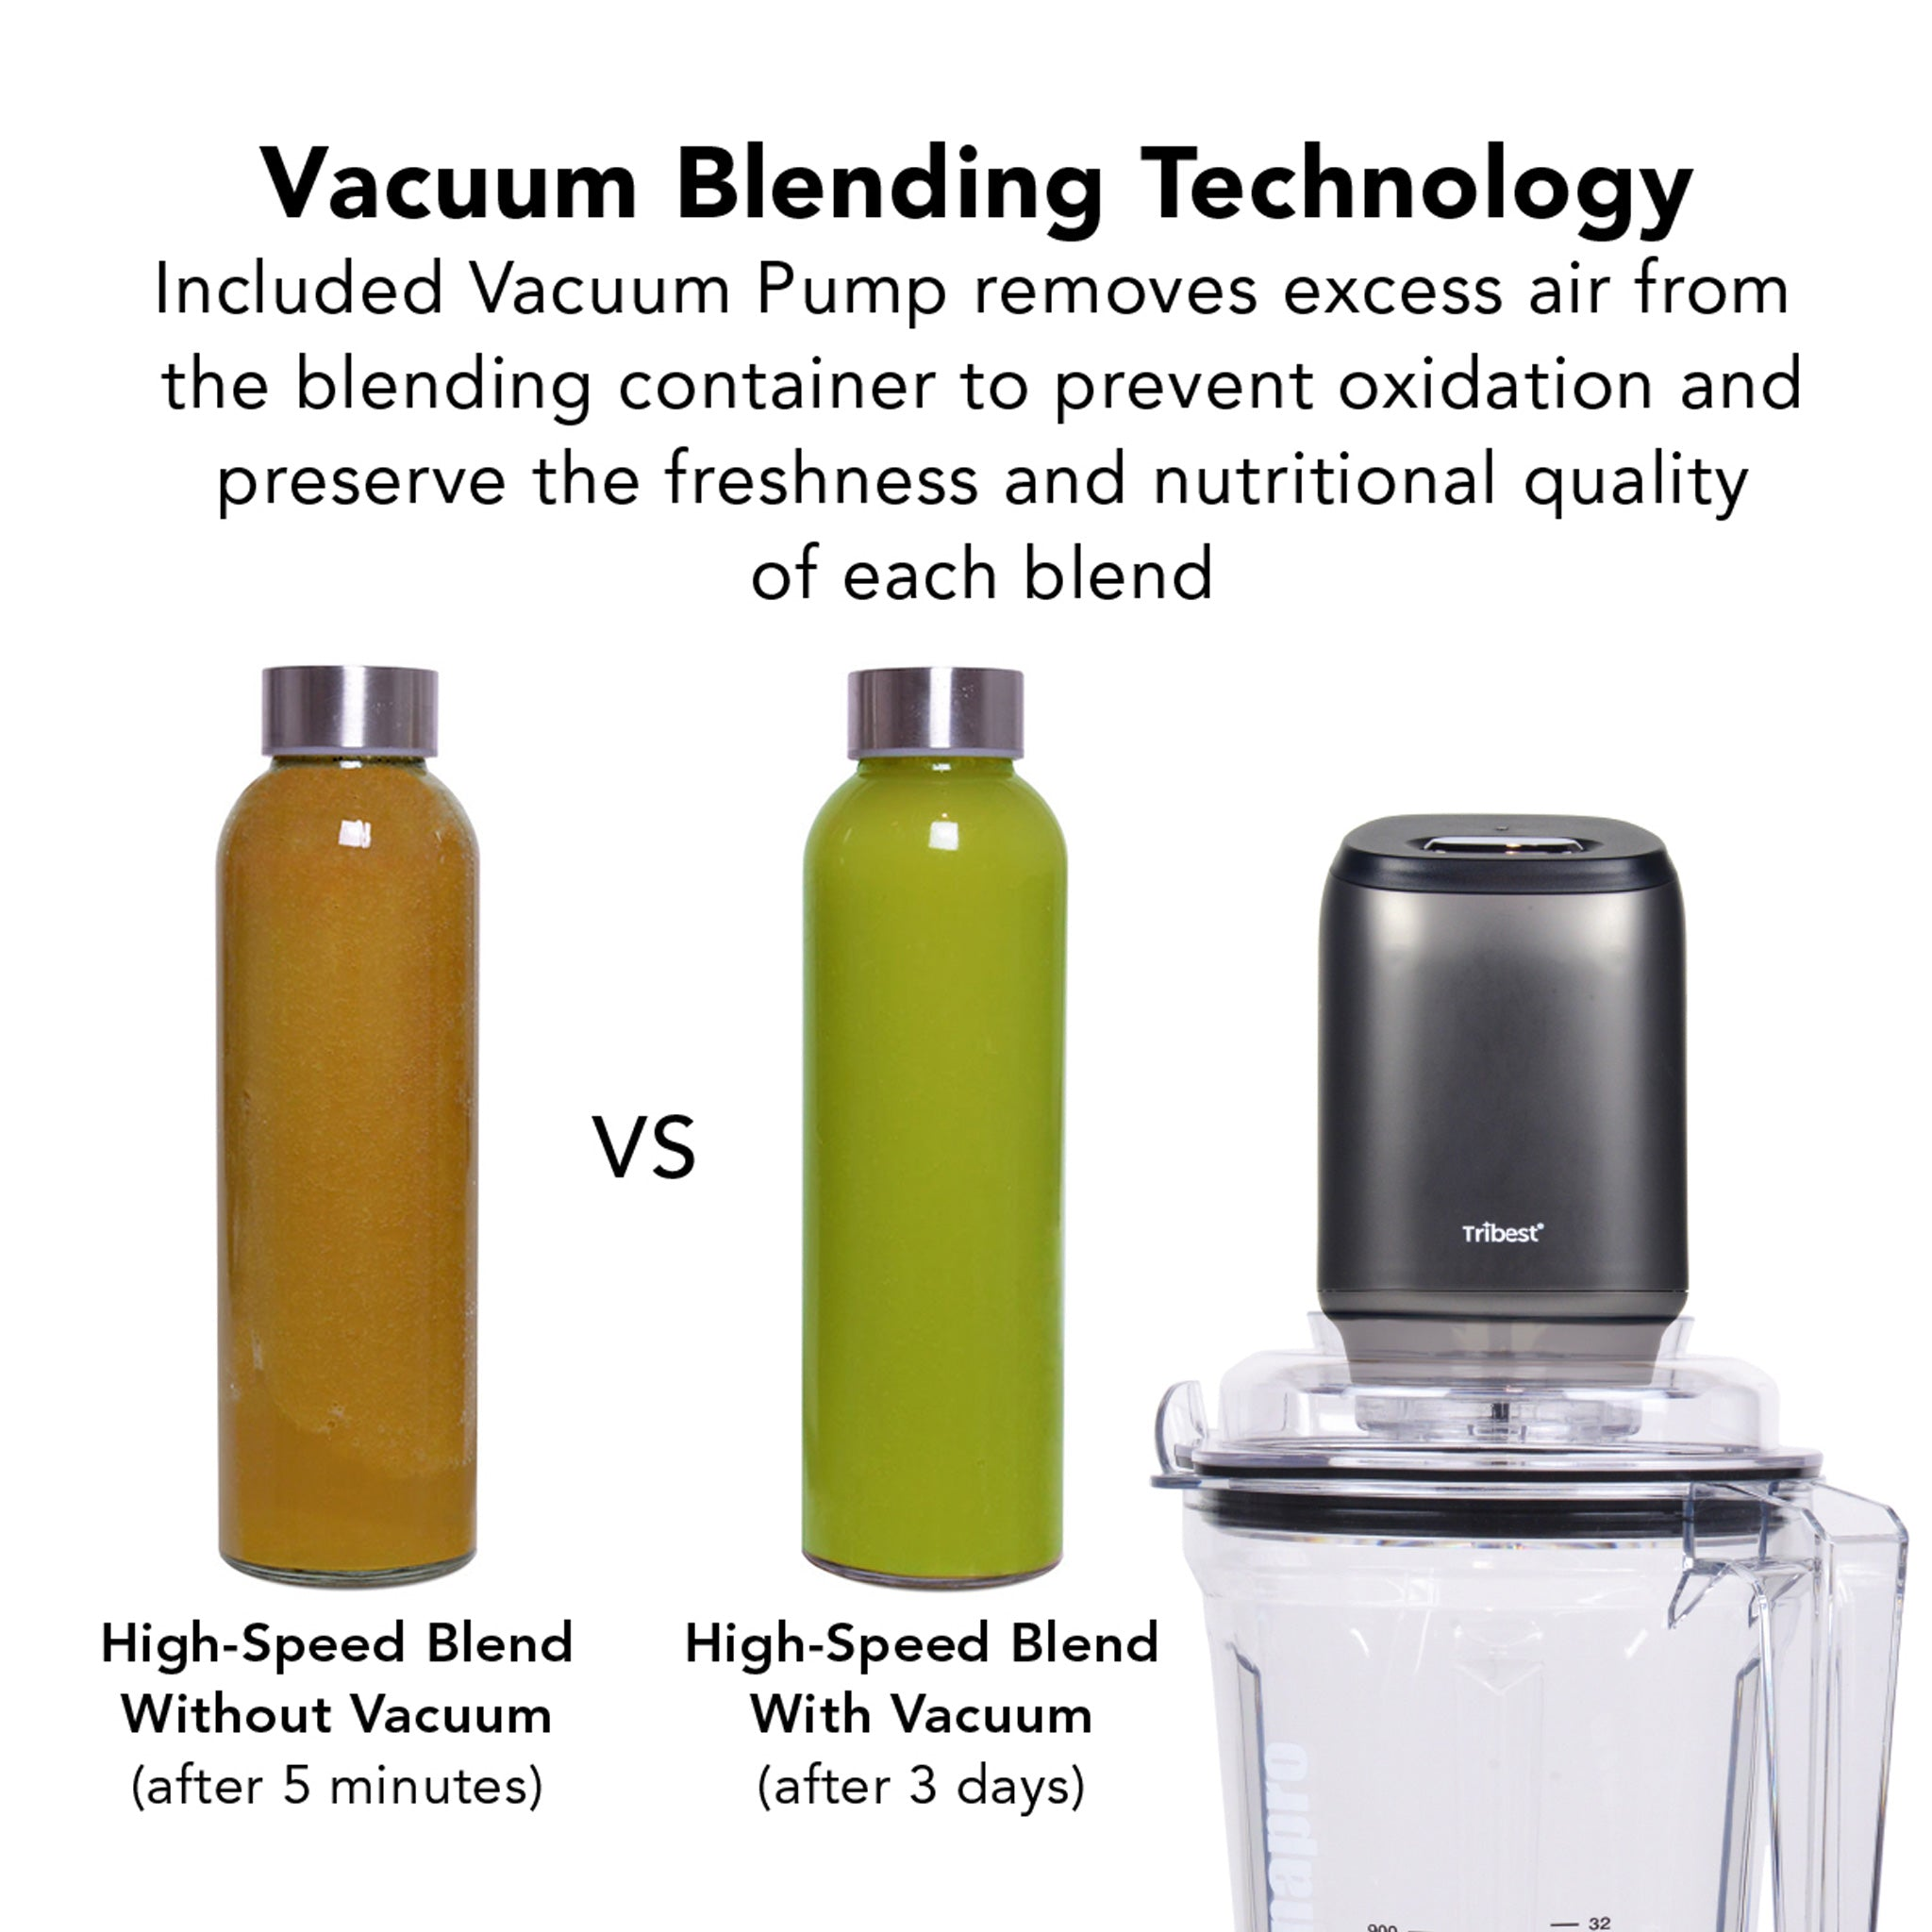 Dynapro Commercial Vacuum Blender DPS-1050A-B - Green Apples Comparison - Tribest